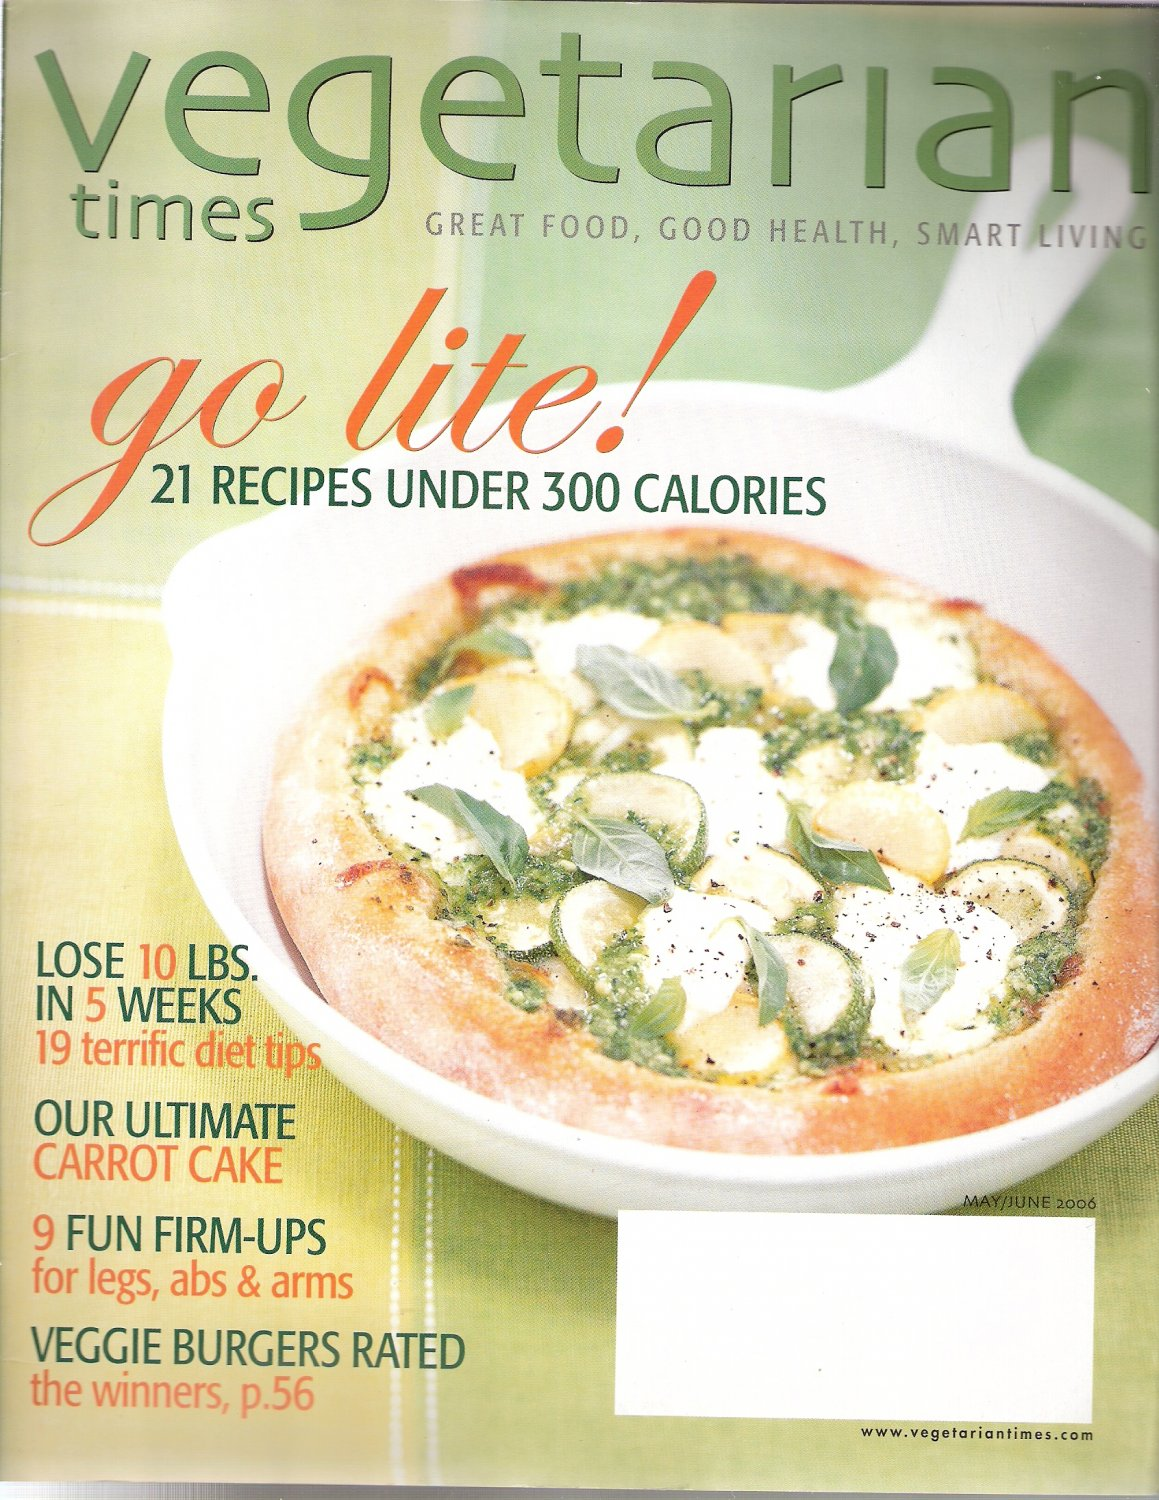 Vegetarian Times Magazine May/June 2006 21 Recipes Under 300 Calories